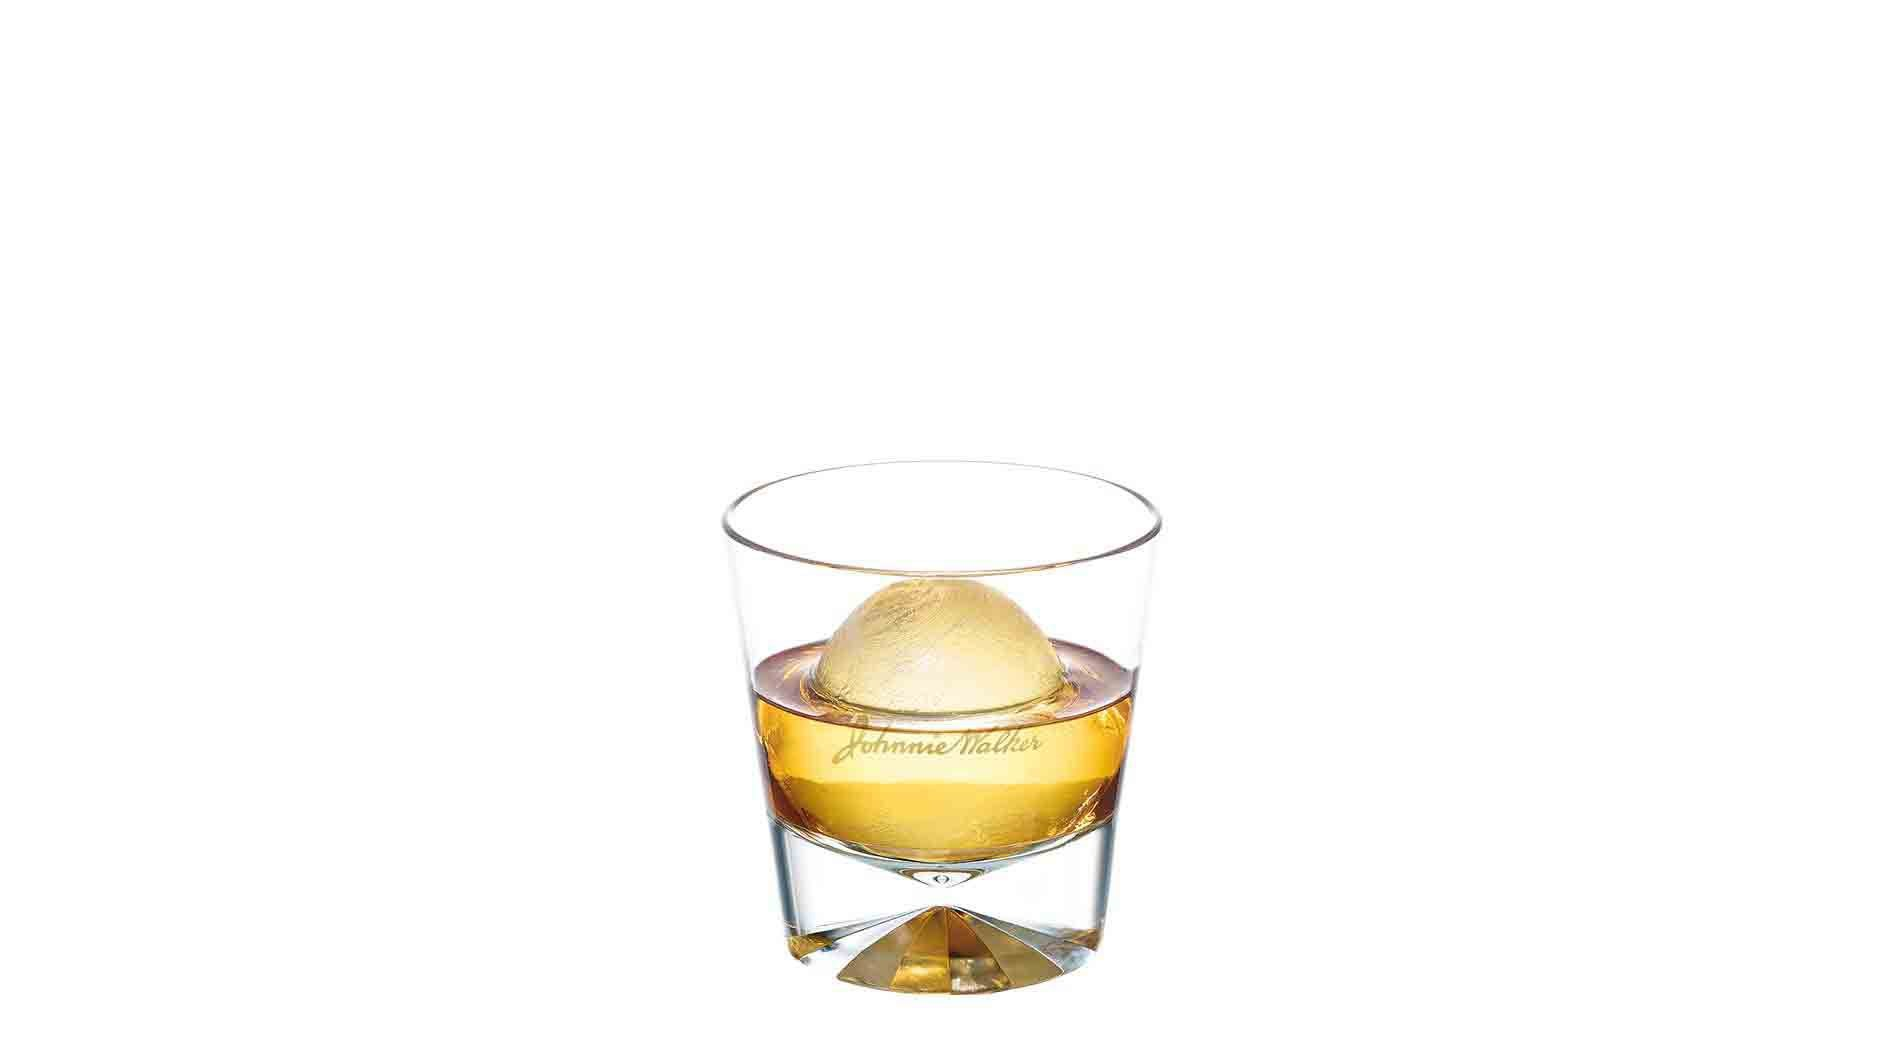 Johnnie Walker Red on the Rocks in a tumbler